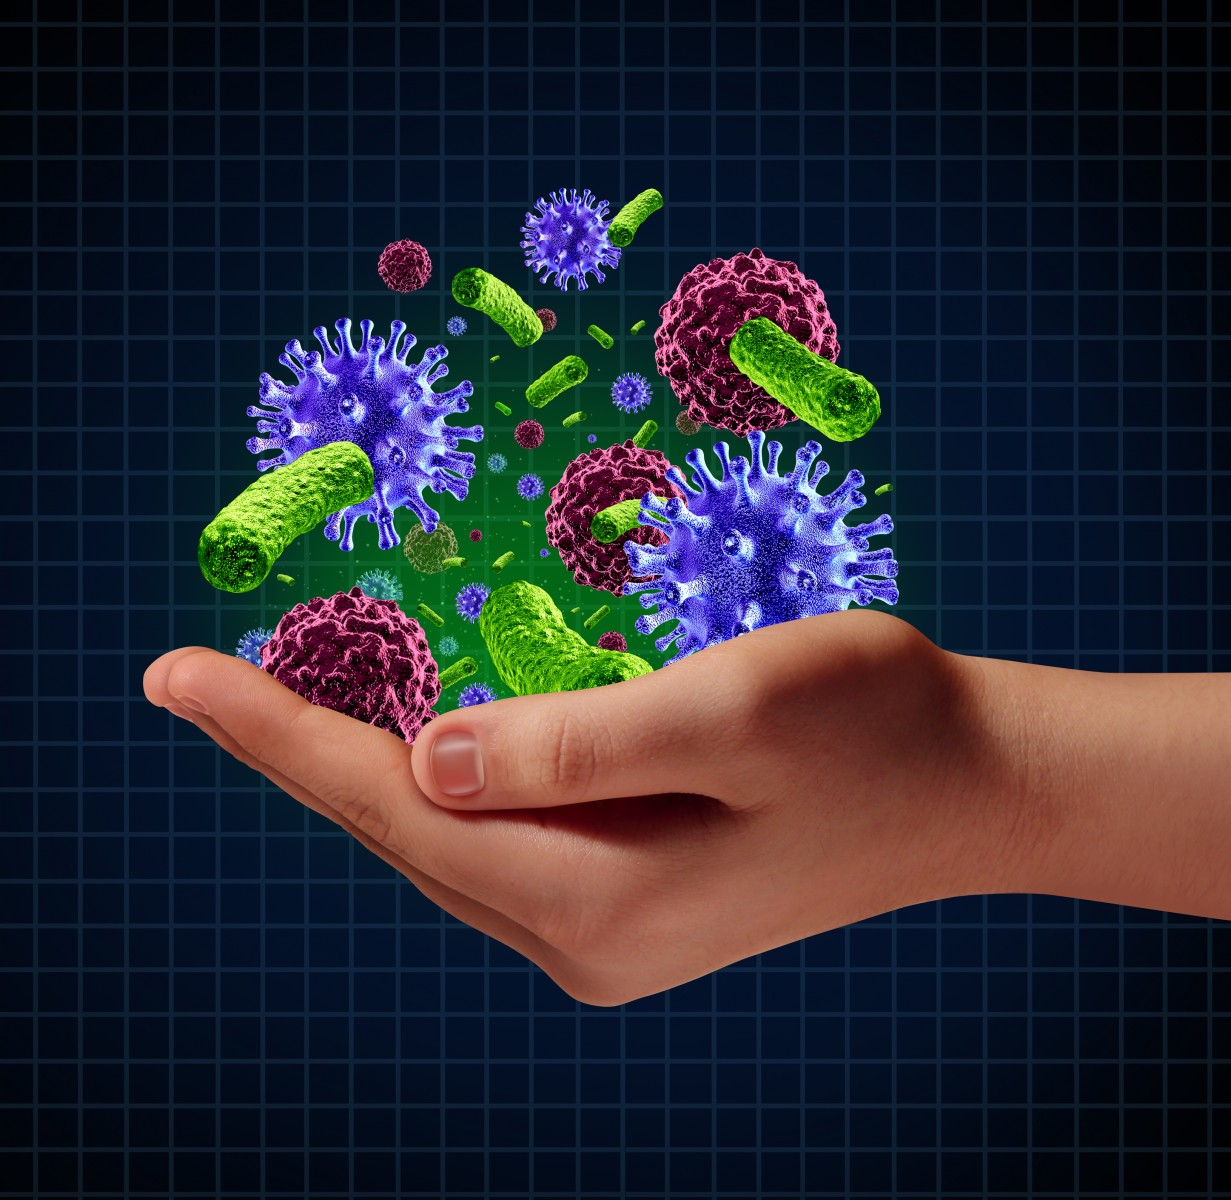 Gut Microbiota Imbalance Discovered in Multiple Sclerosis Patients